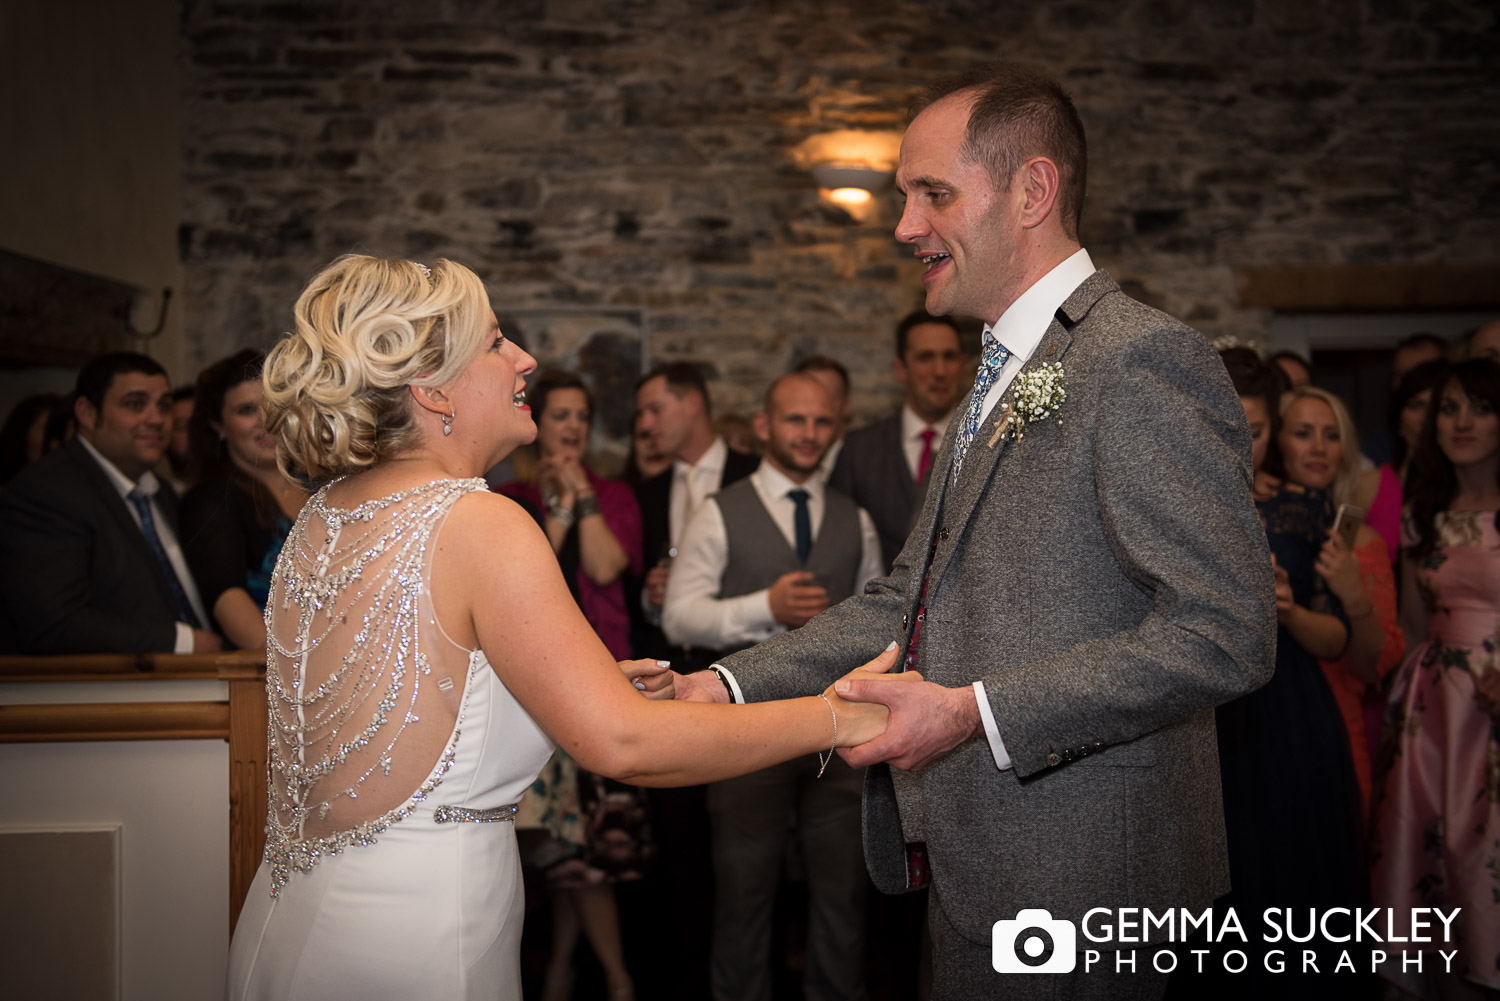 first dance at Belmount Hall wedding in Hawkshead